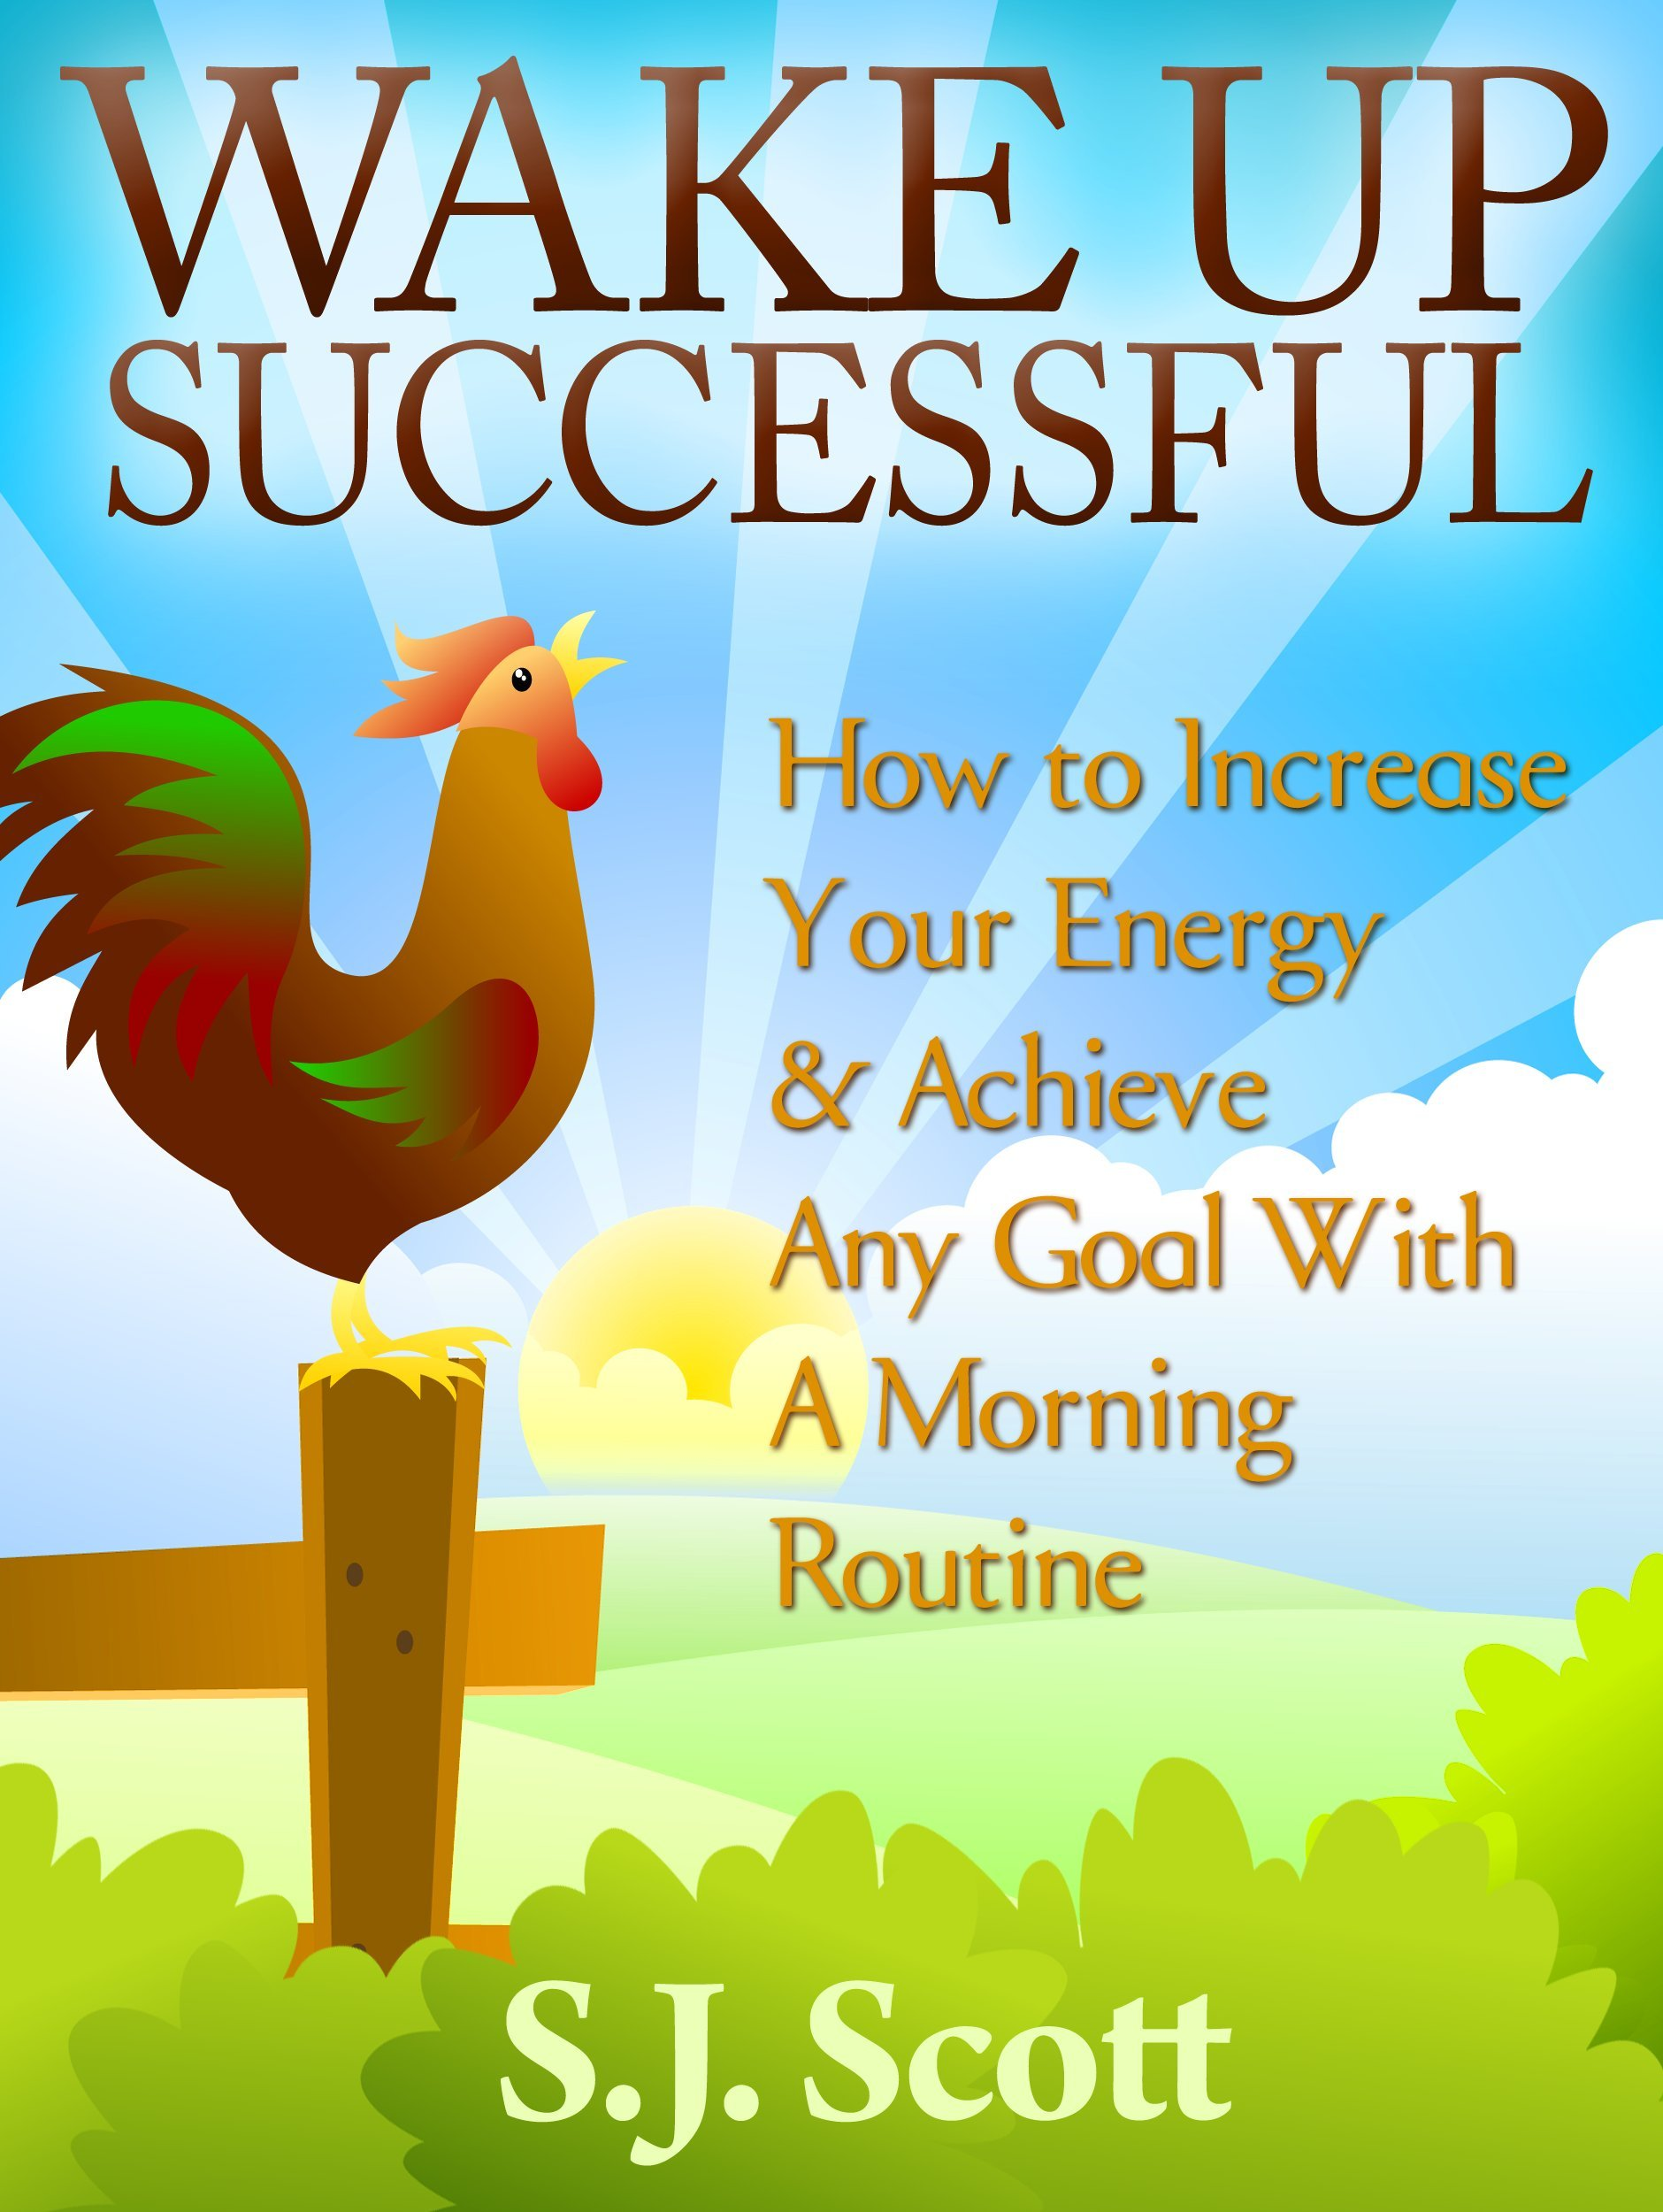 Image OfWake Up Successful - How To Increase Your Energy And Achieve Any Goal With A Morning Routine (Productive Habits Book 3)